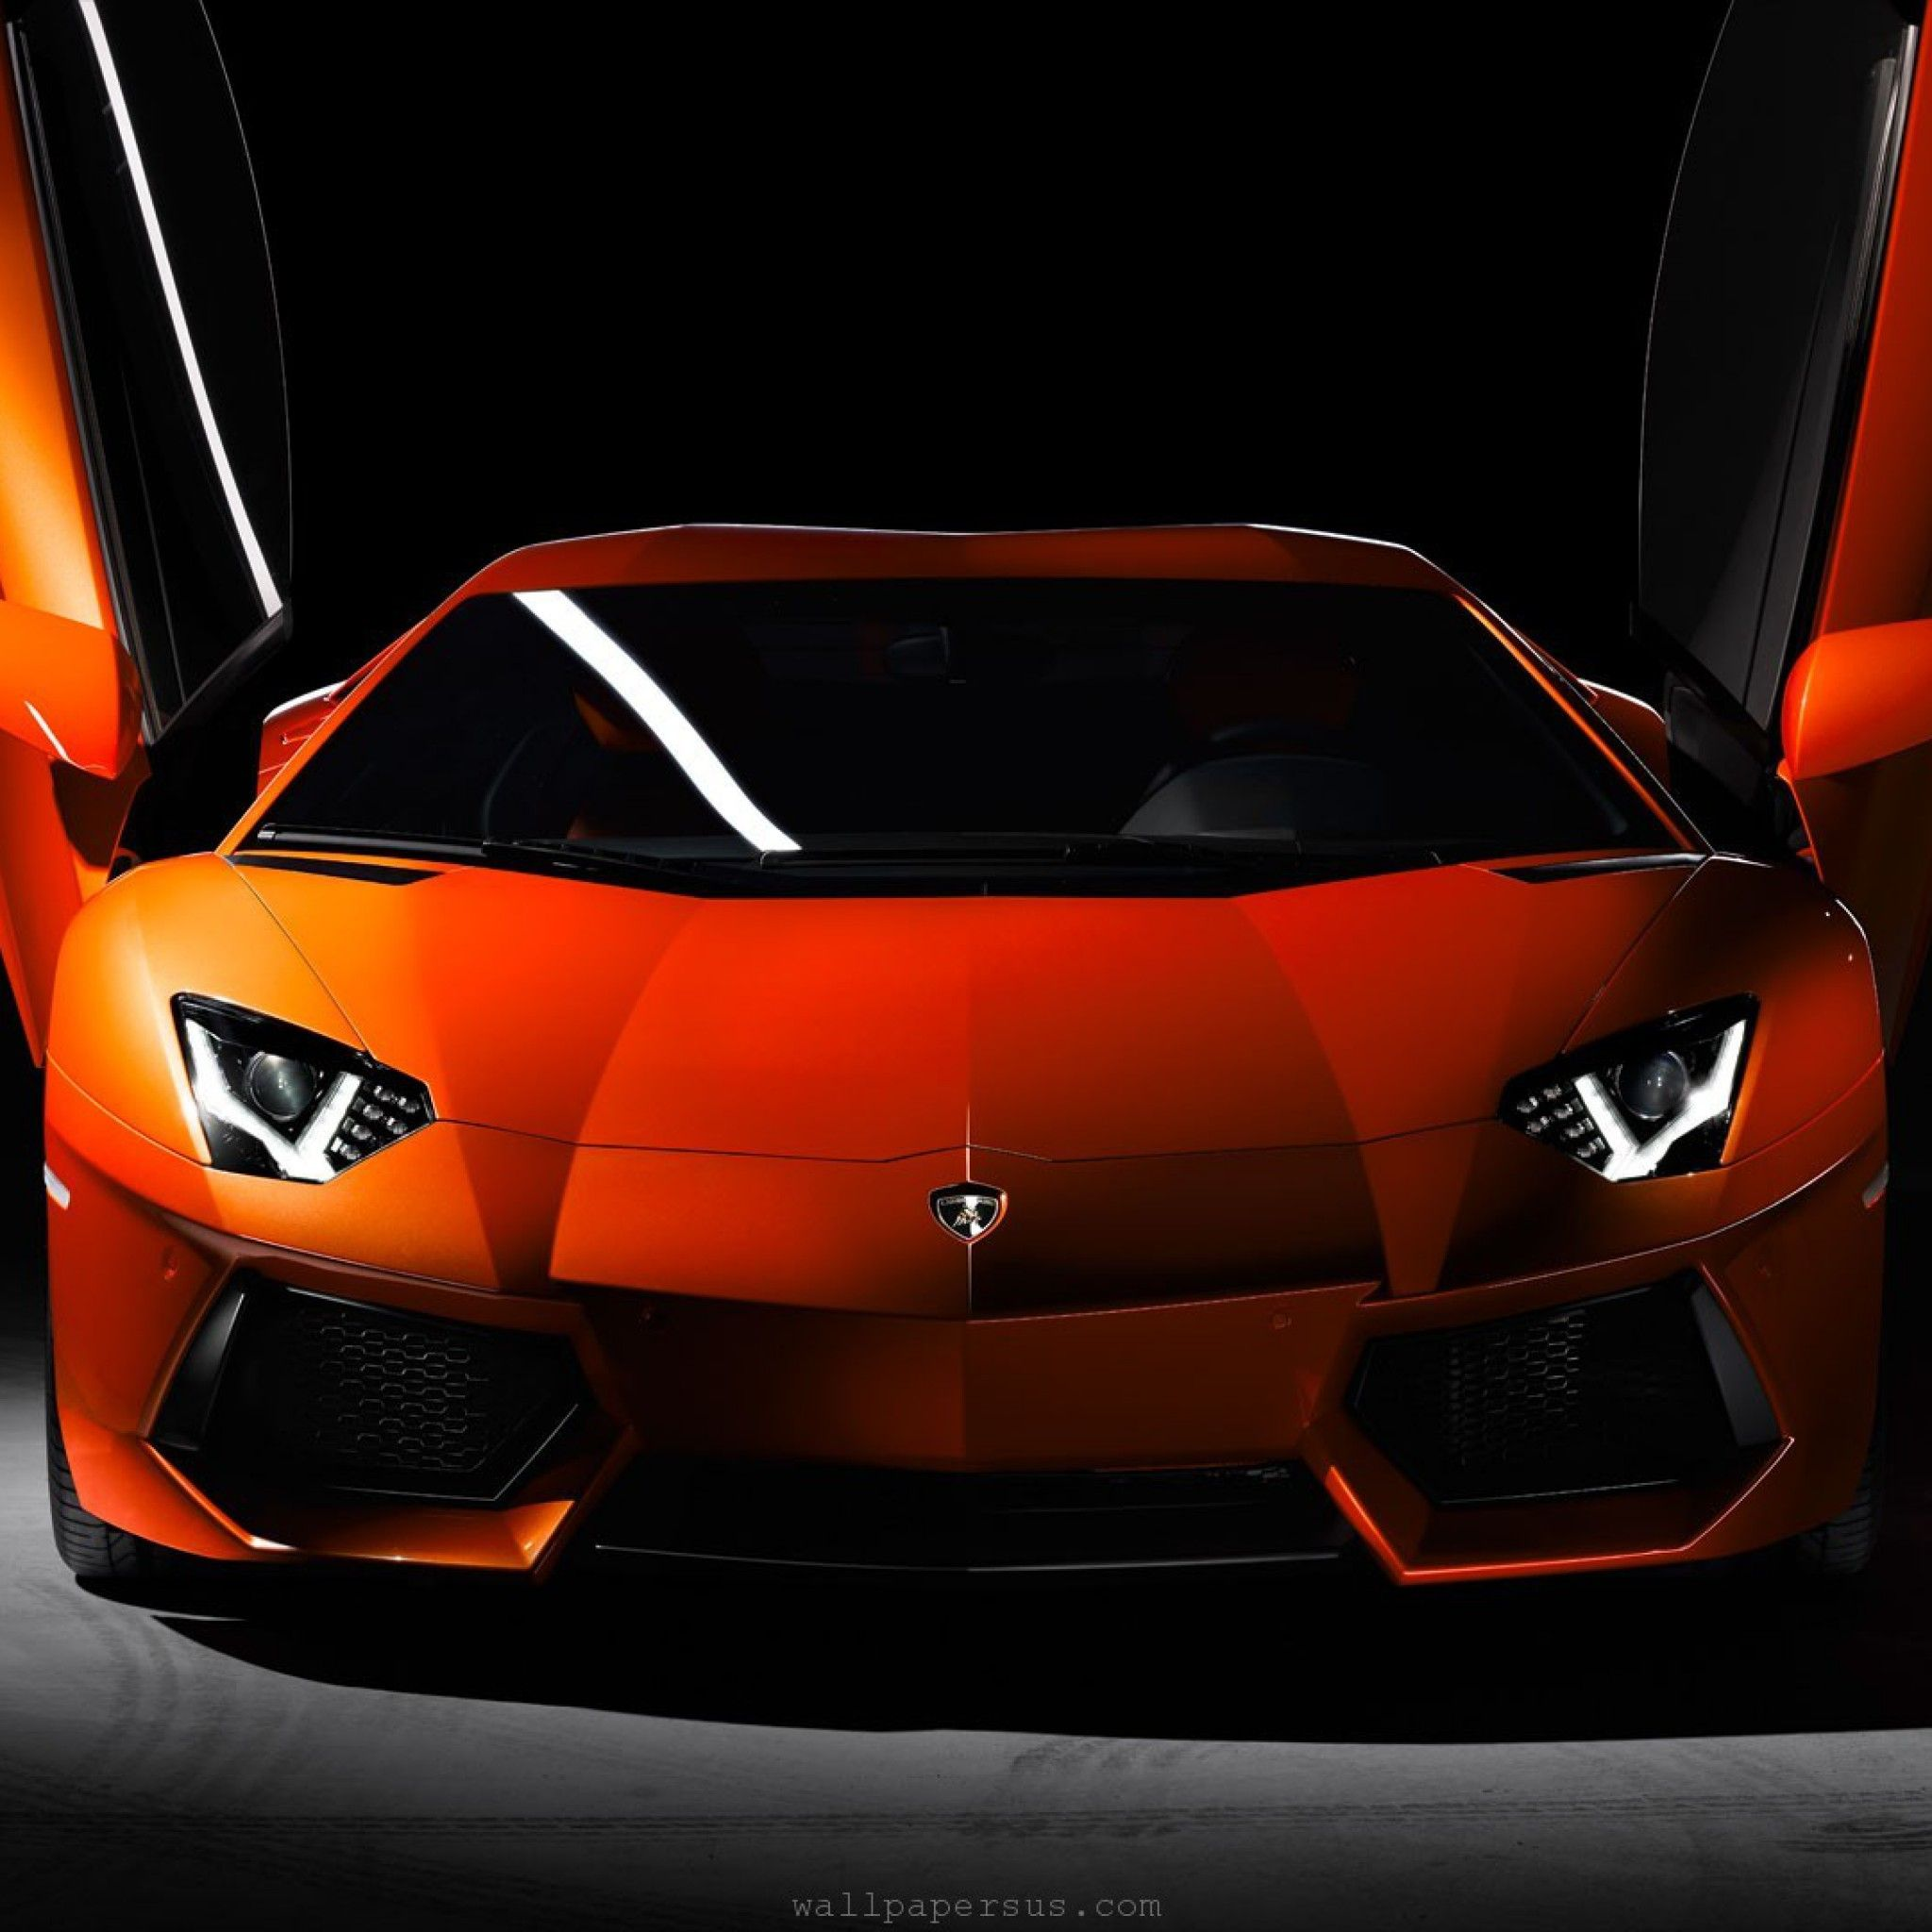 a in southbeachexoticrentals car cars vehicles miami lamborghini luxury exotic rent img spyder huracan rental